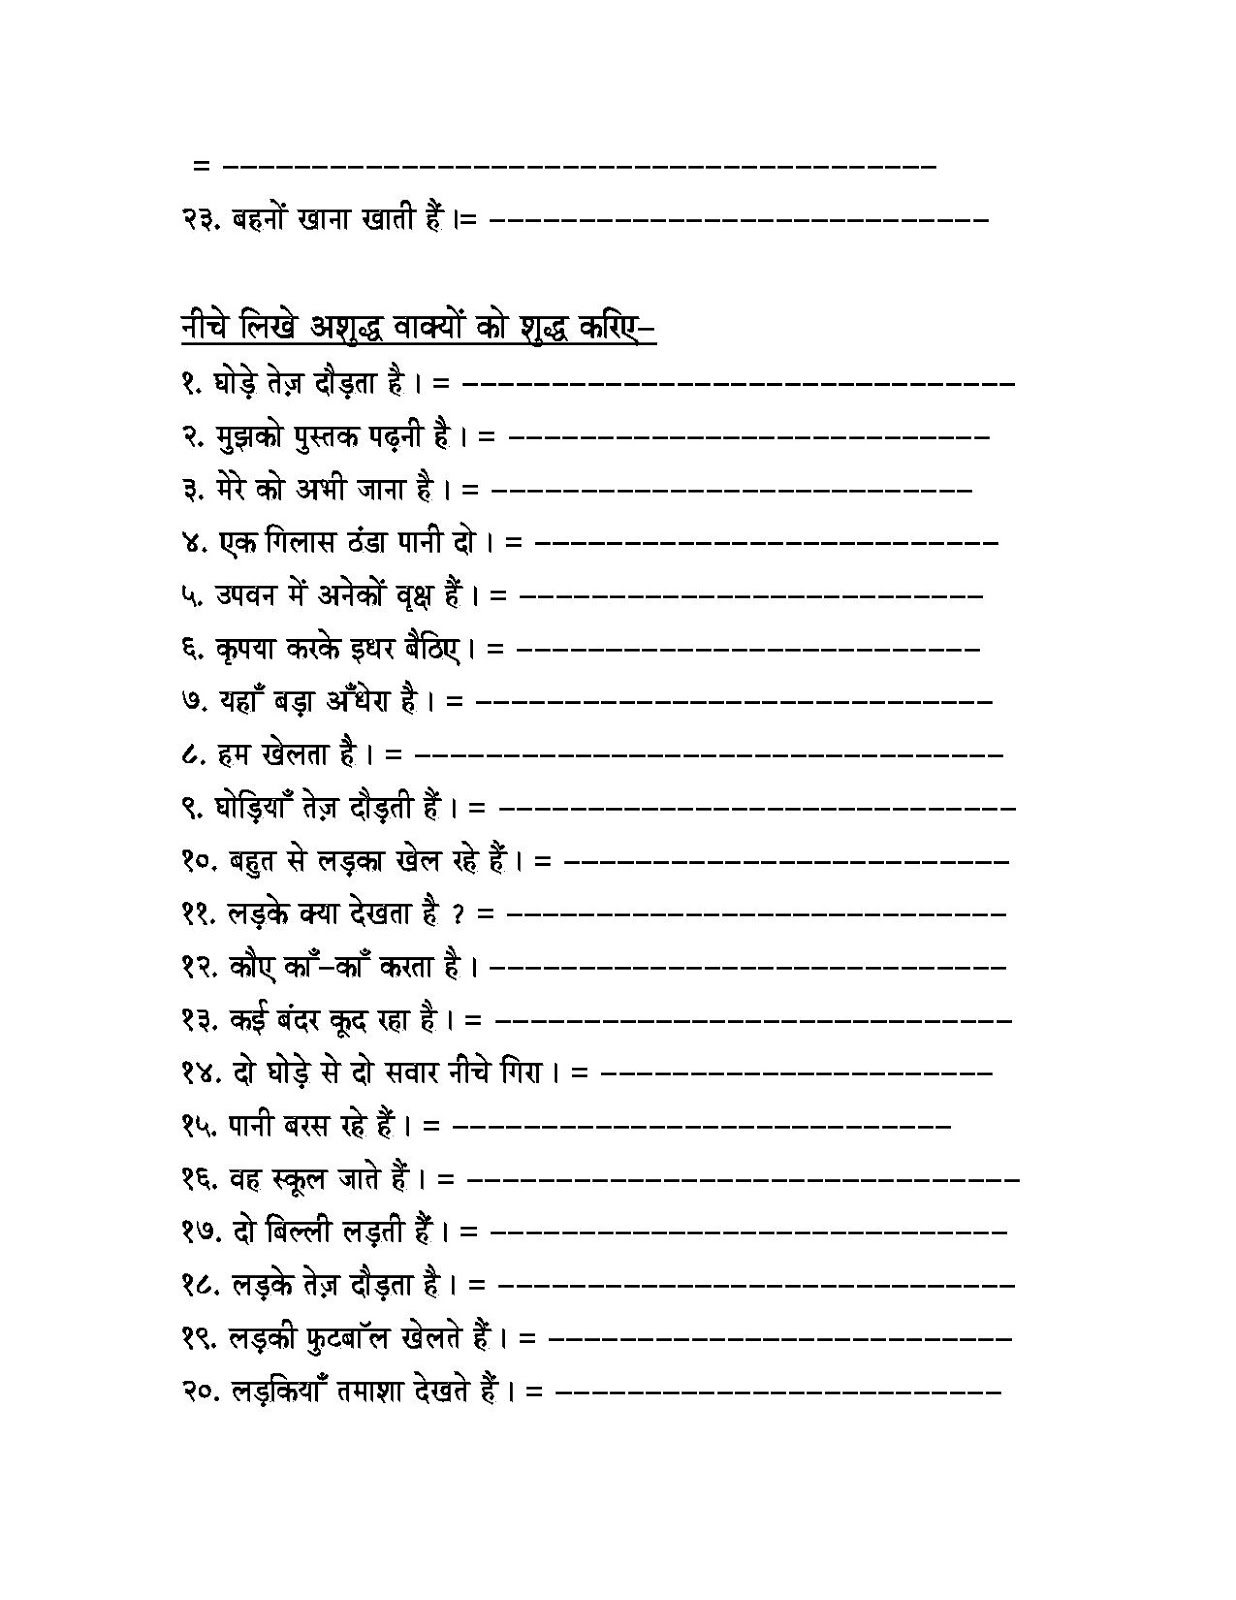 English grammar worksheets for grade 5 cbse